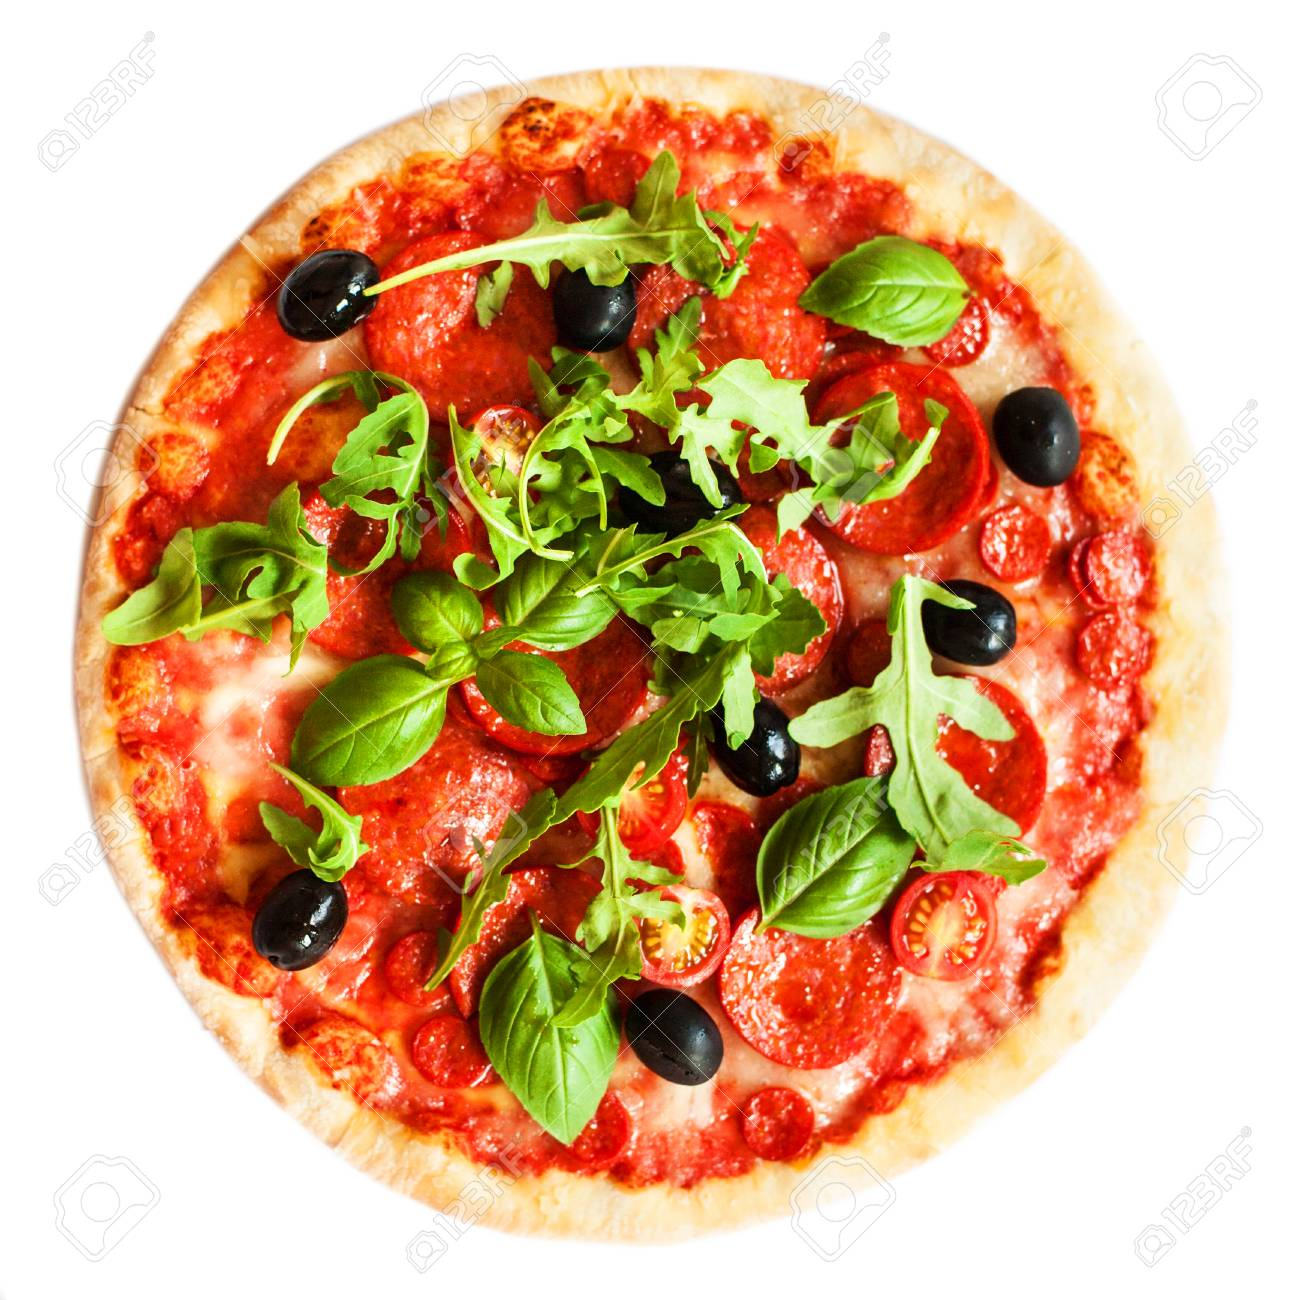 Pepperoni Pizza With Fresh Ingredients Isolated On White 1300x1300